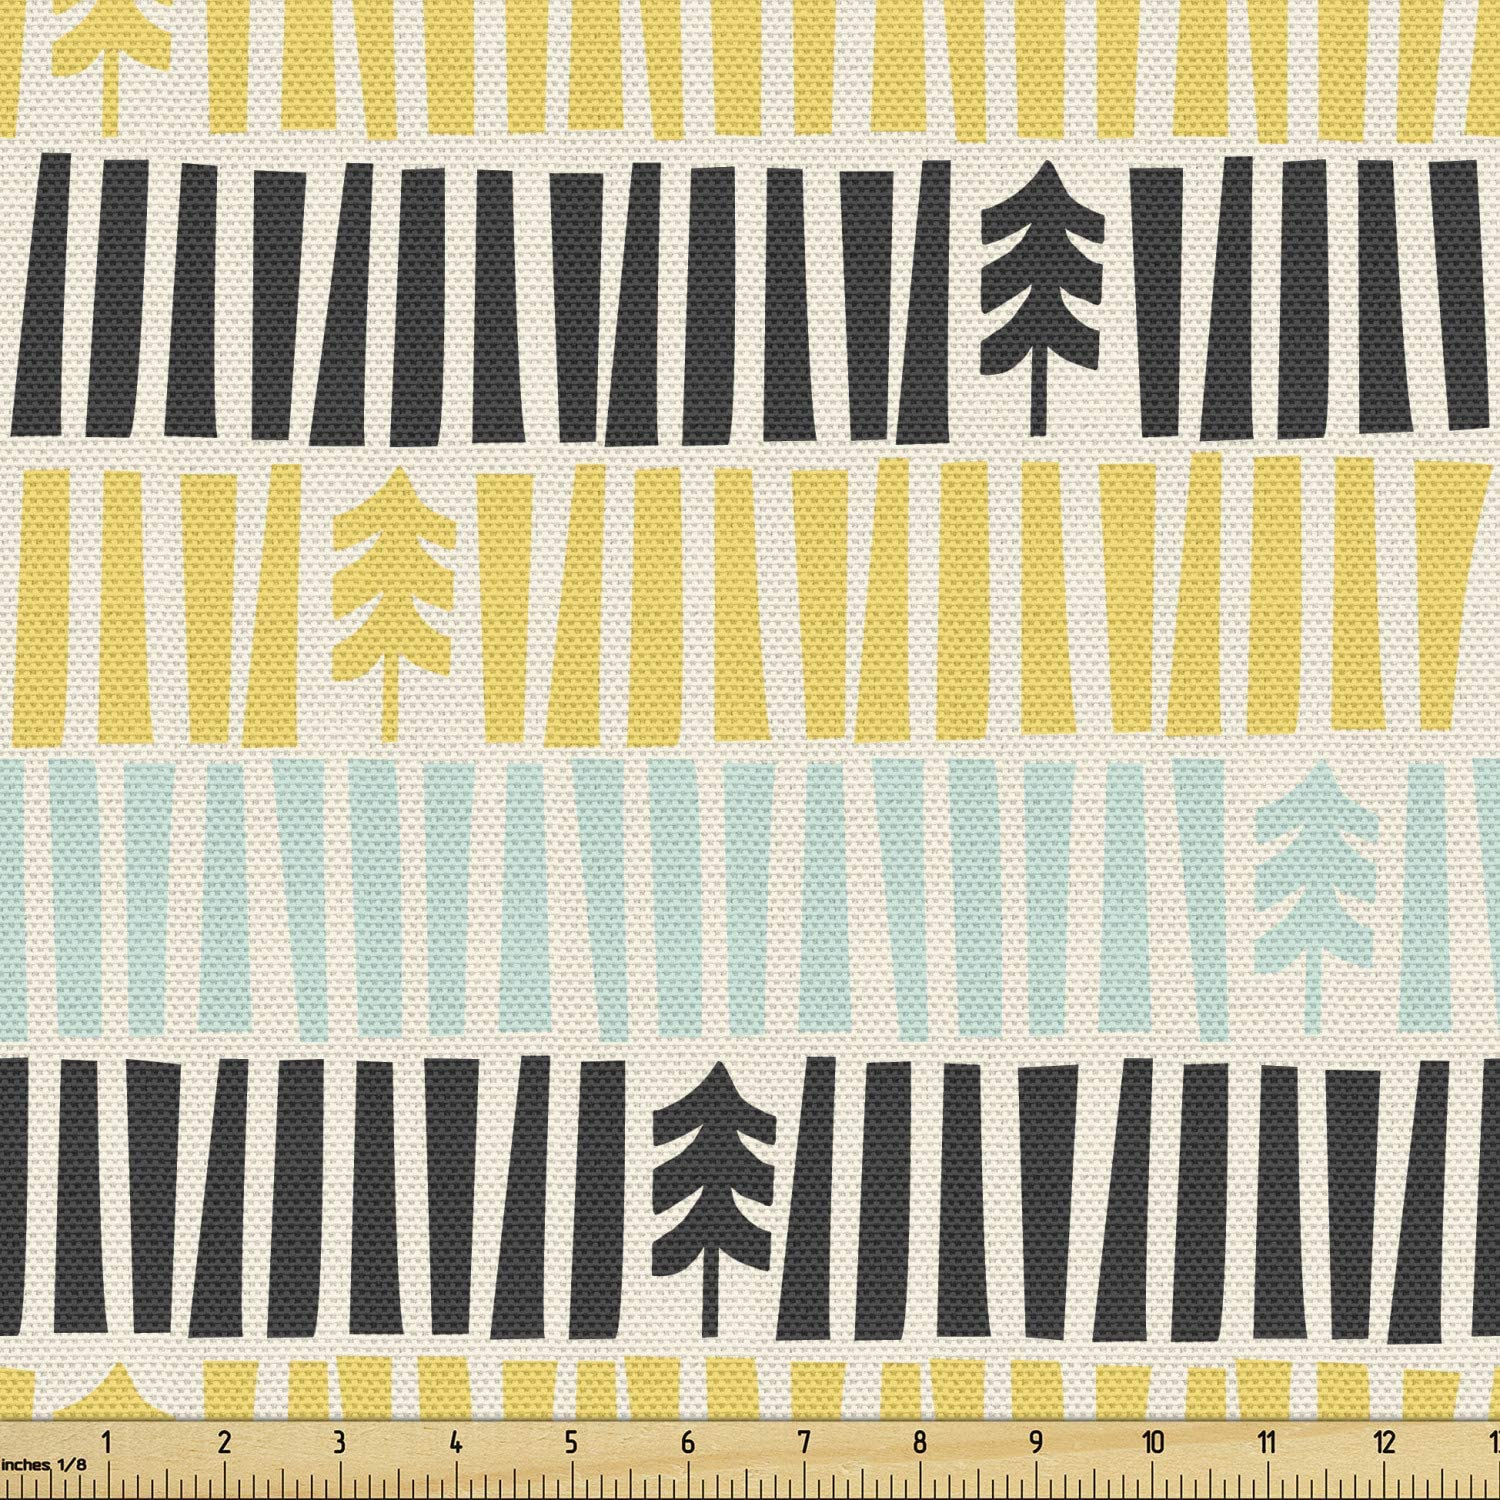 Ambesonne Mid Century Fabric by The Yard, Abstract Christmas Holiday Tree Illustrations Inspired by The Fifties, Decorative Fabric for Upholstery and Home Accents, 2 Yards, Yellow Black